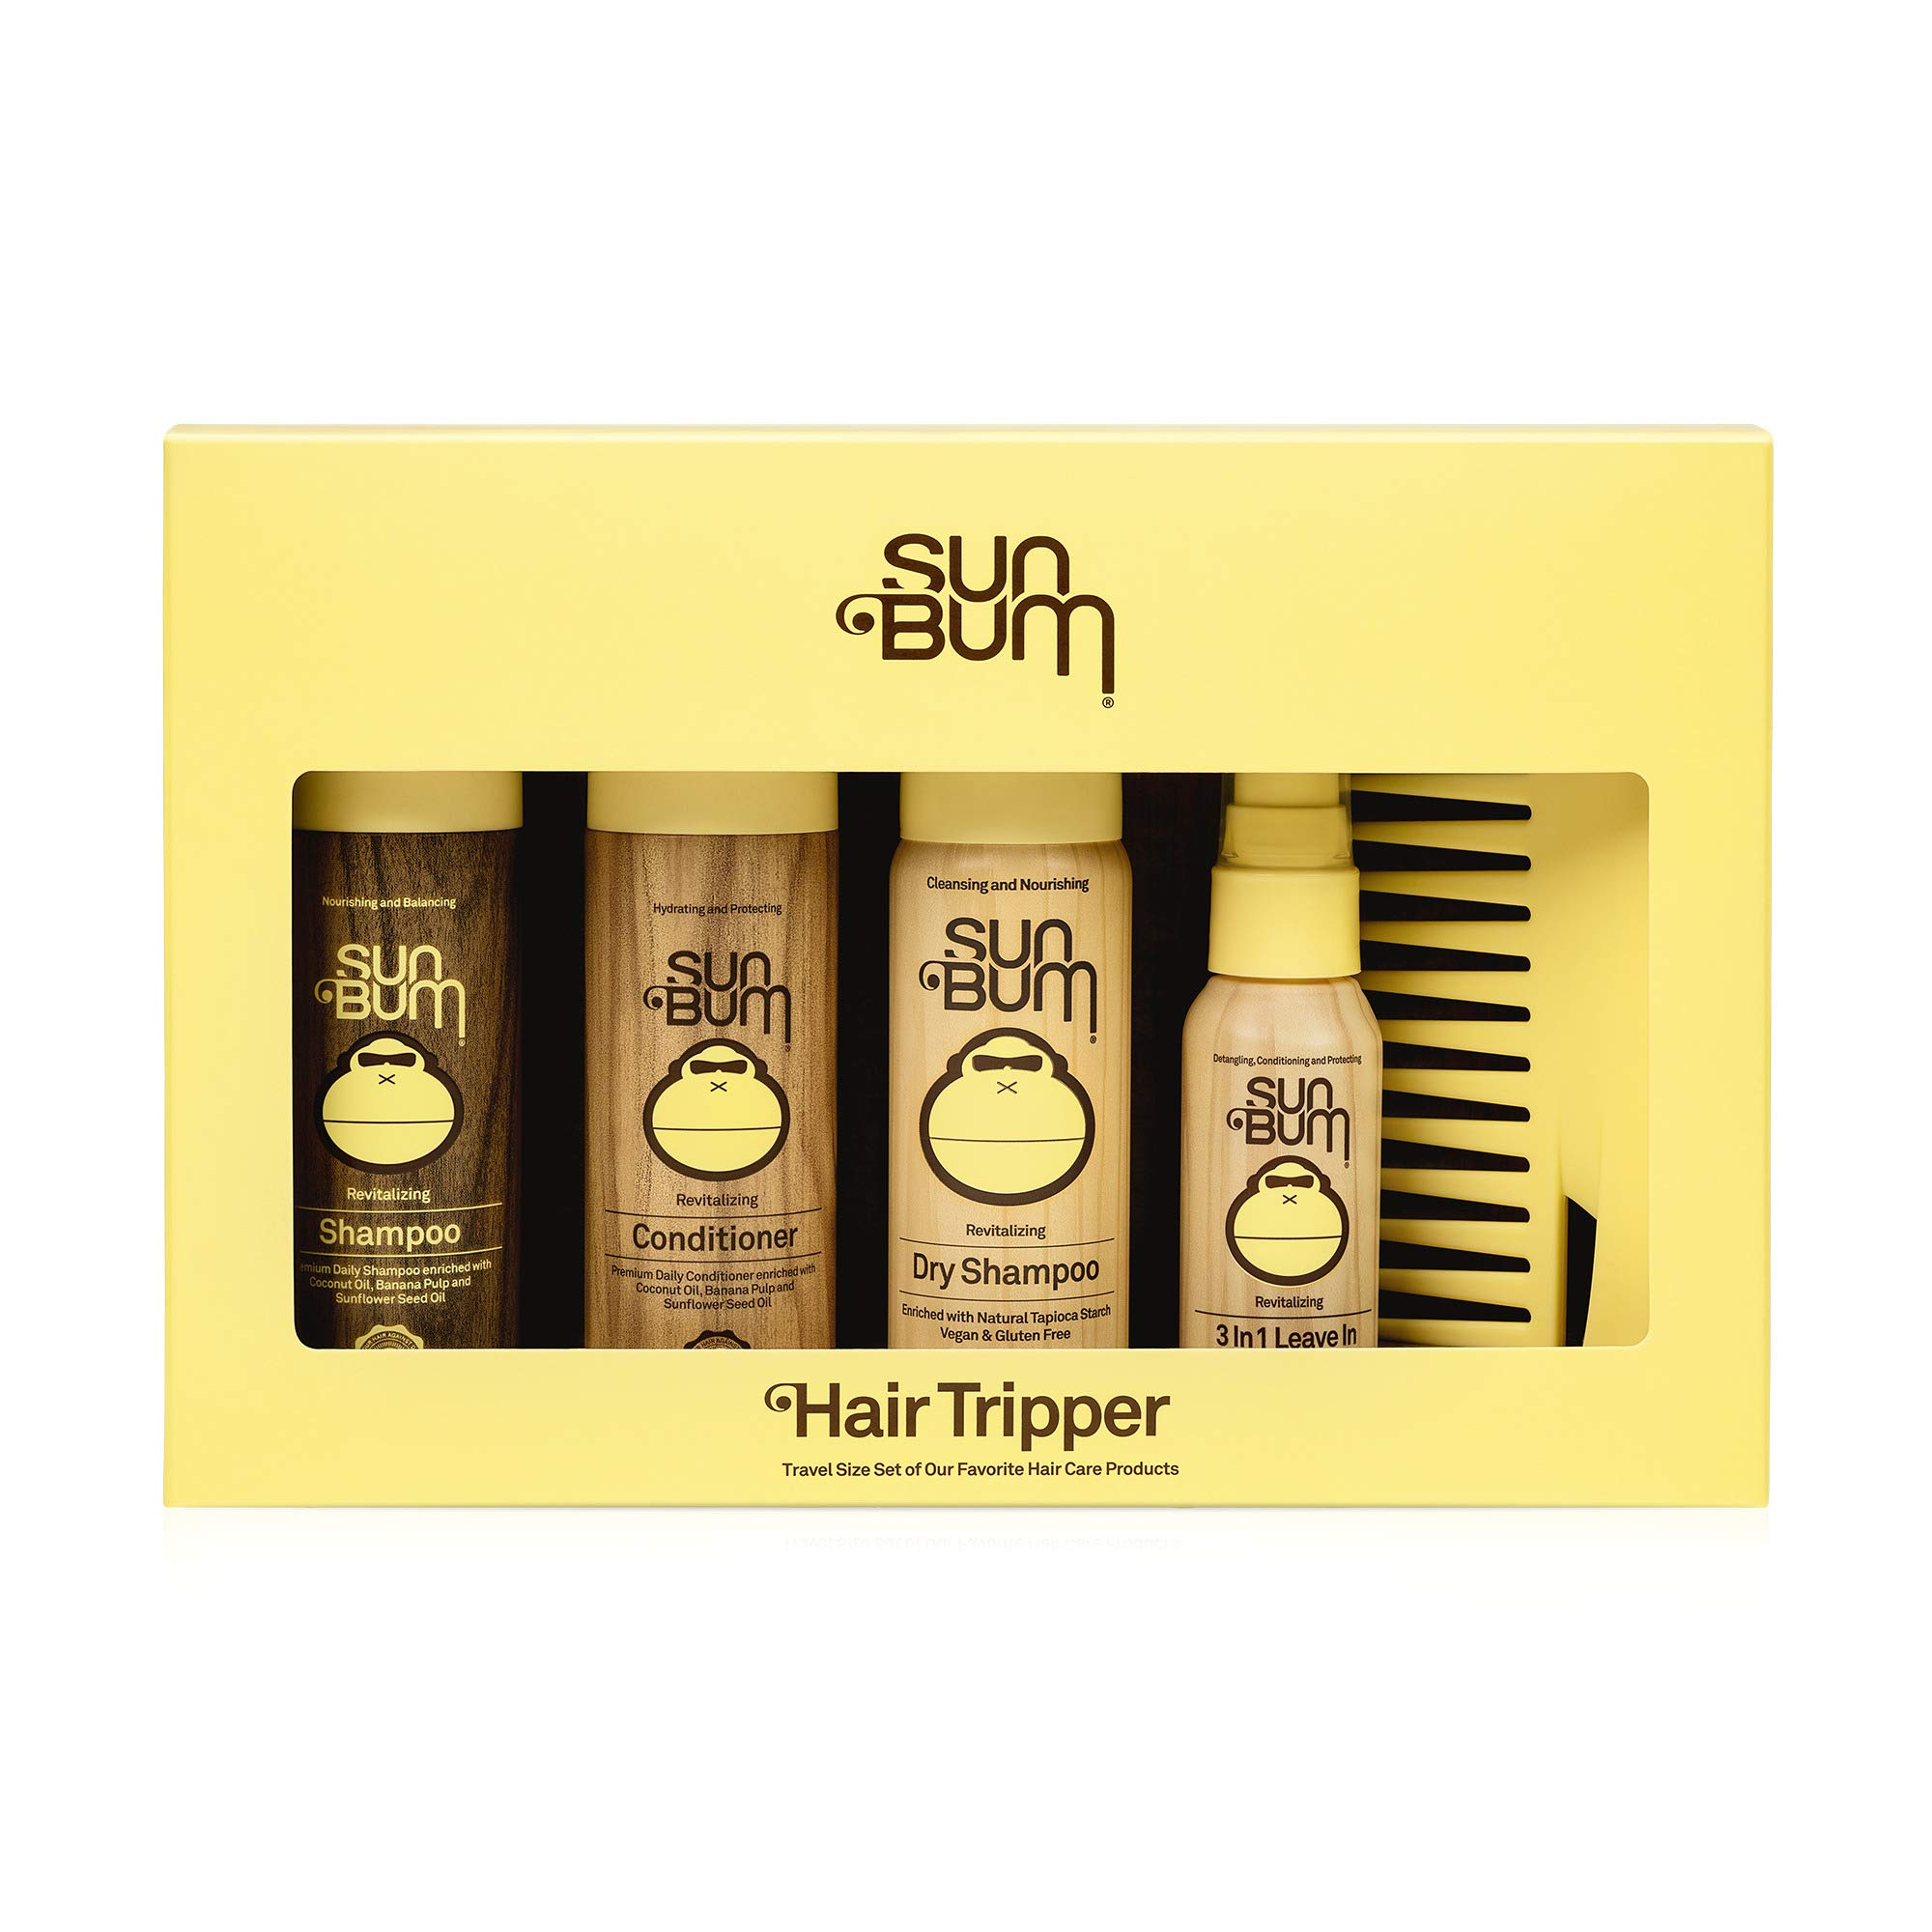 Sun Bum Hair Tripper, Hair Care Travel Size Kit, Includes 1 Travel Size bottle of Shampoo, Conditioner, Dry Shampoo, 3 in 1 Leave in Conditioner Spray and Comb, TSA Approved, 1 Count, One Size, Yellow